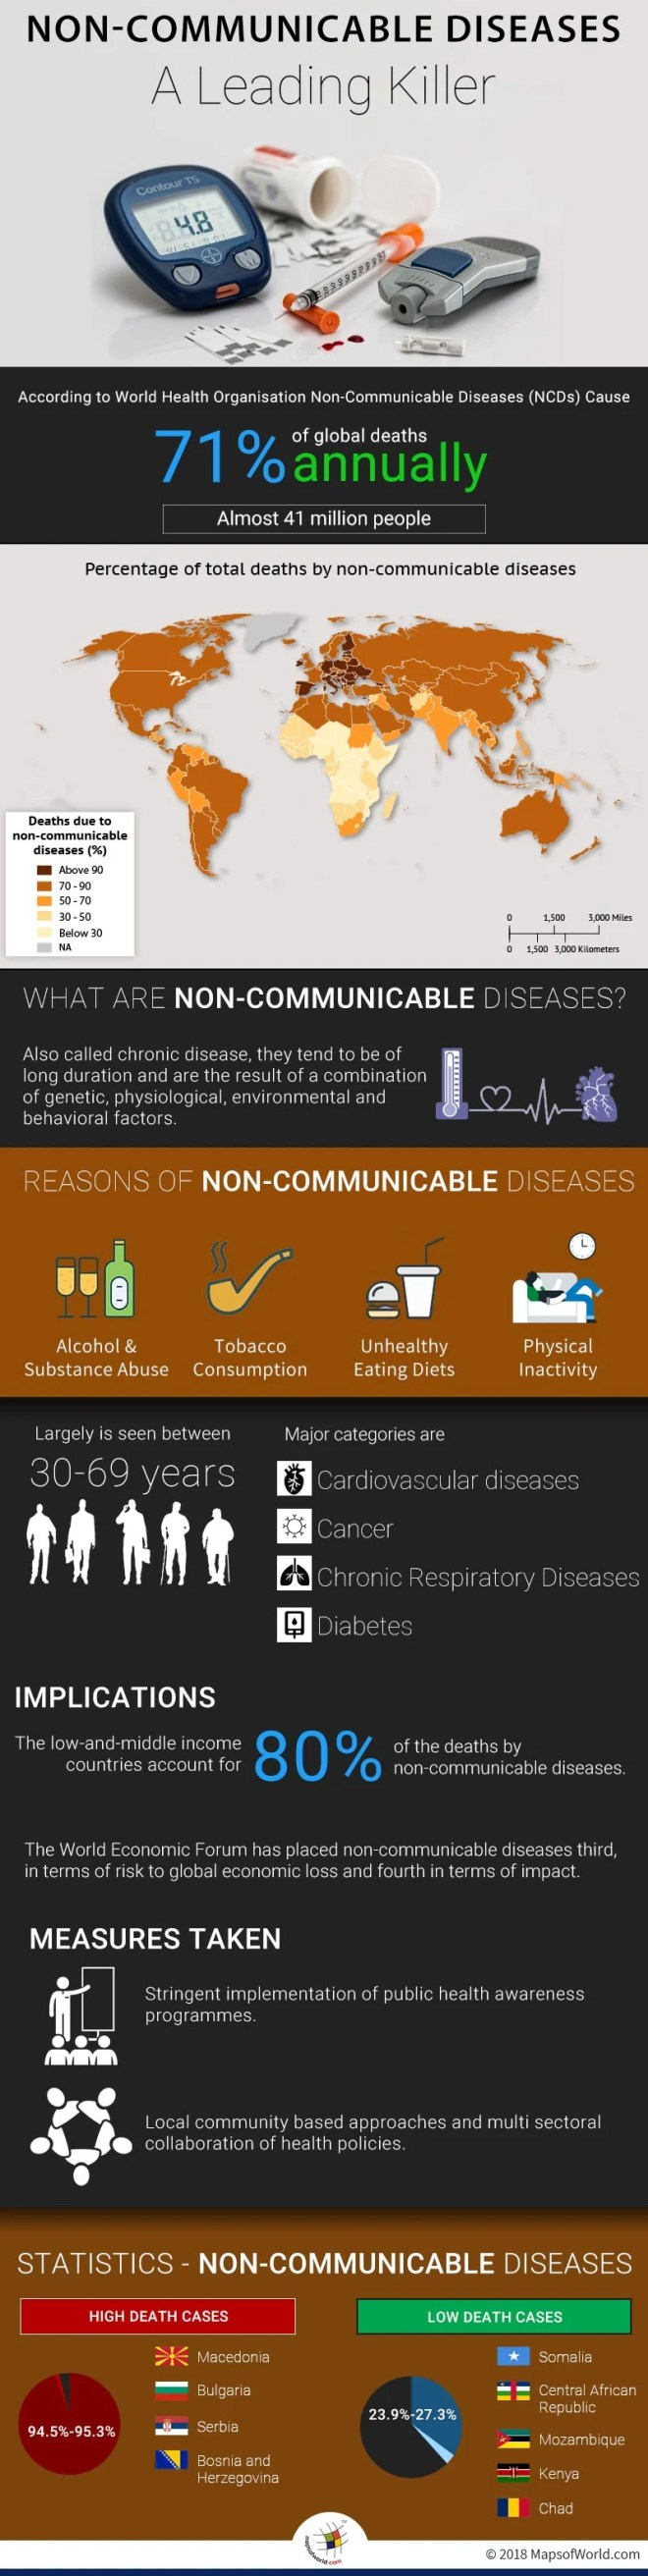 Countries with high death rates due to non-communicable diseases